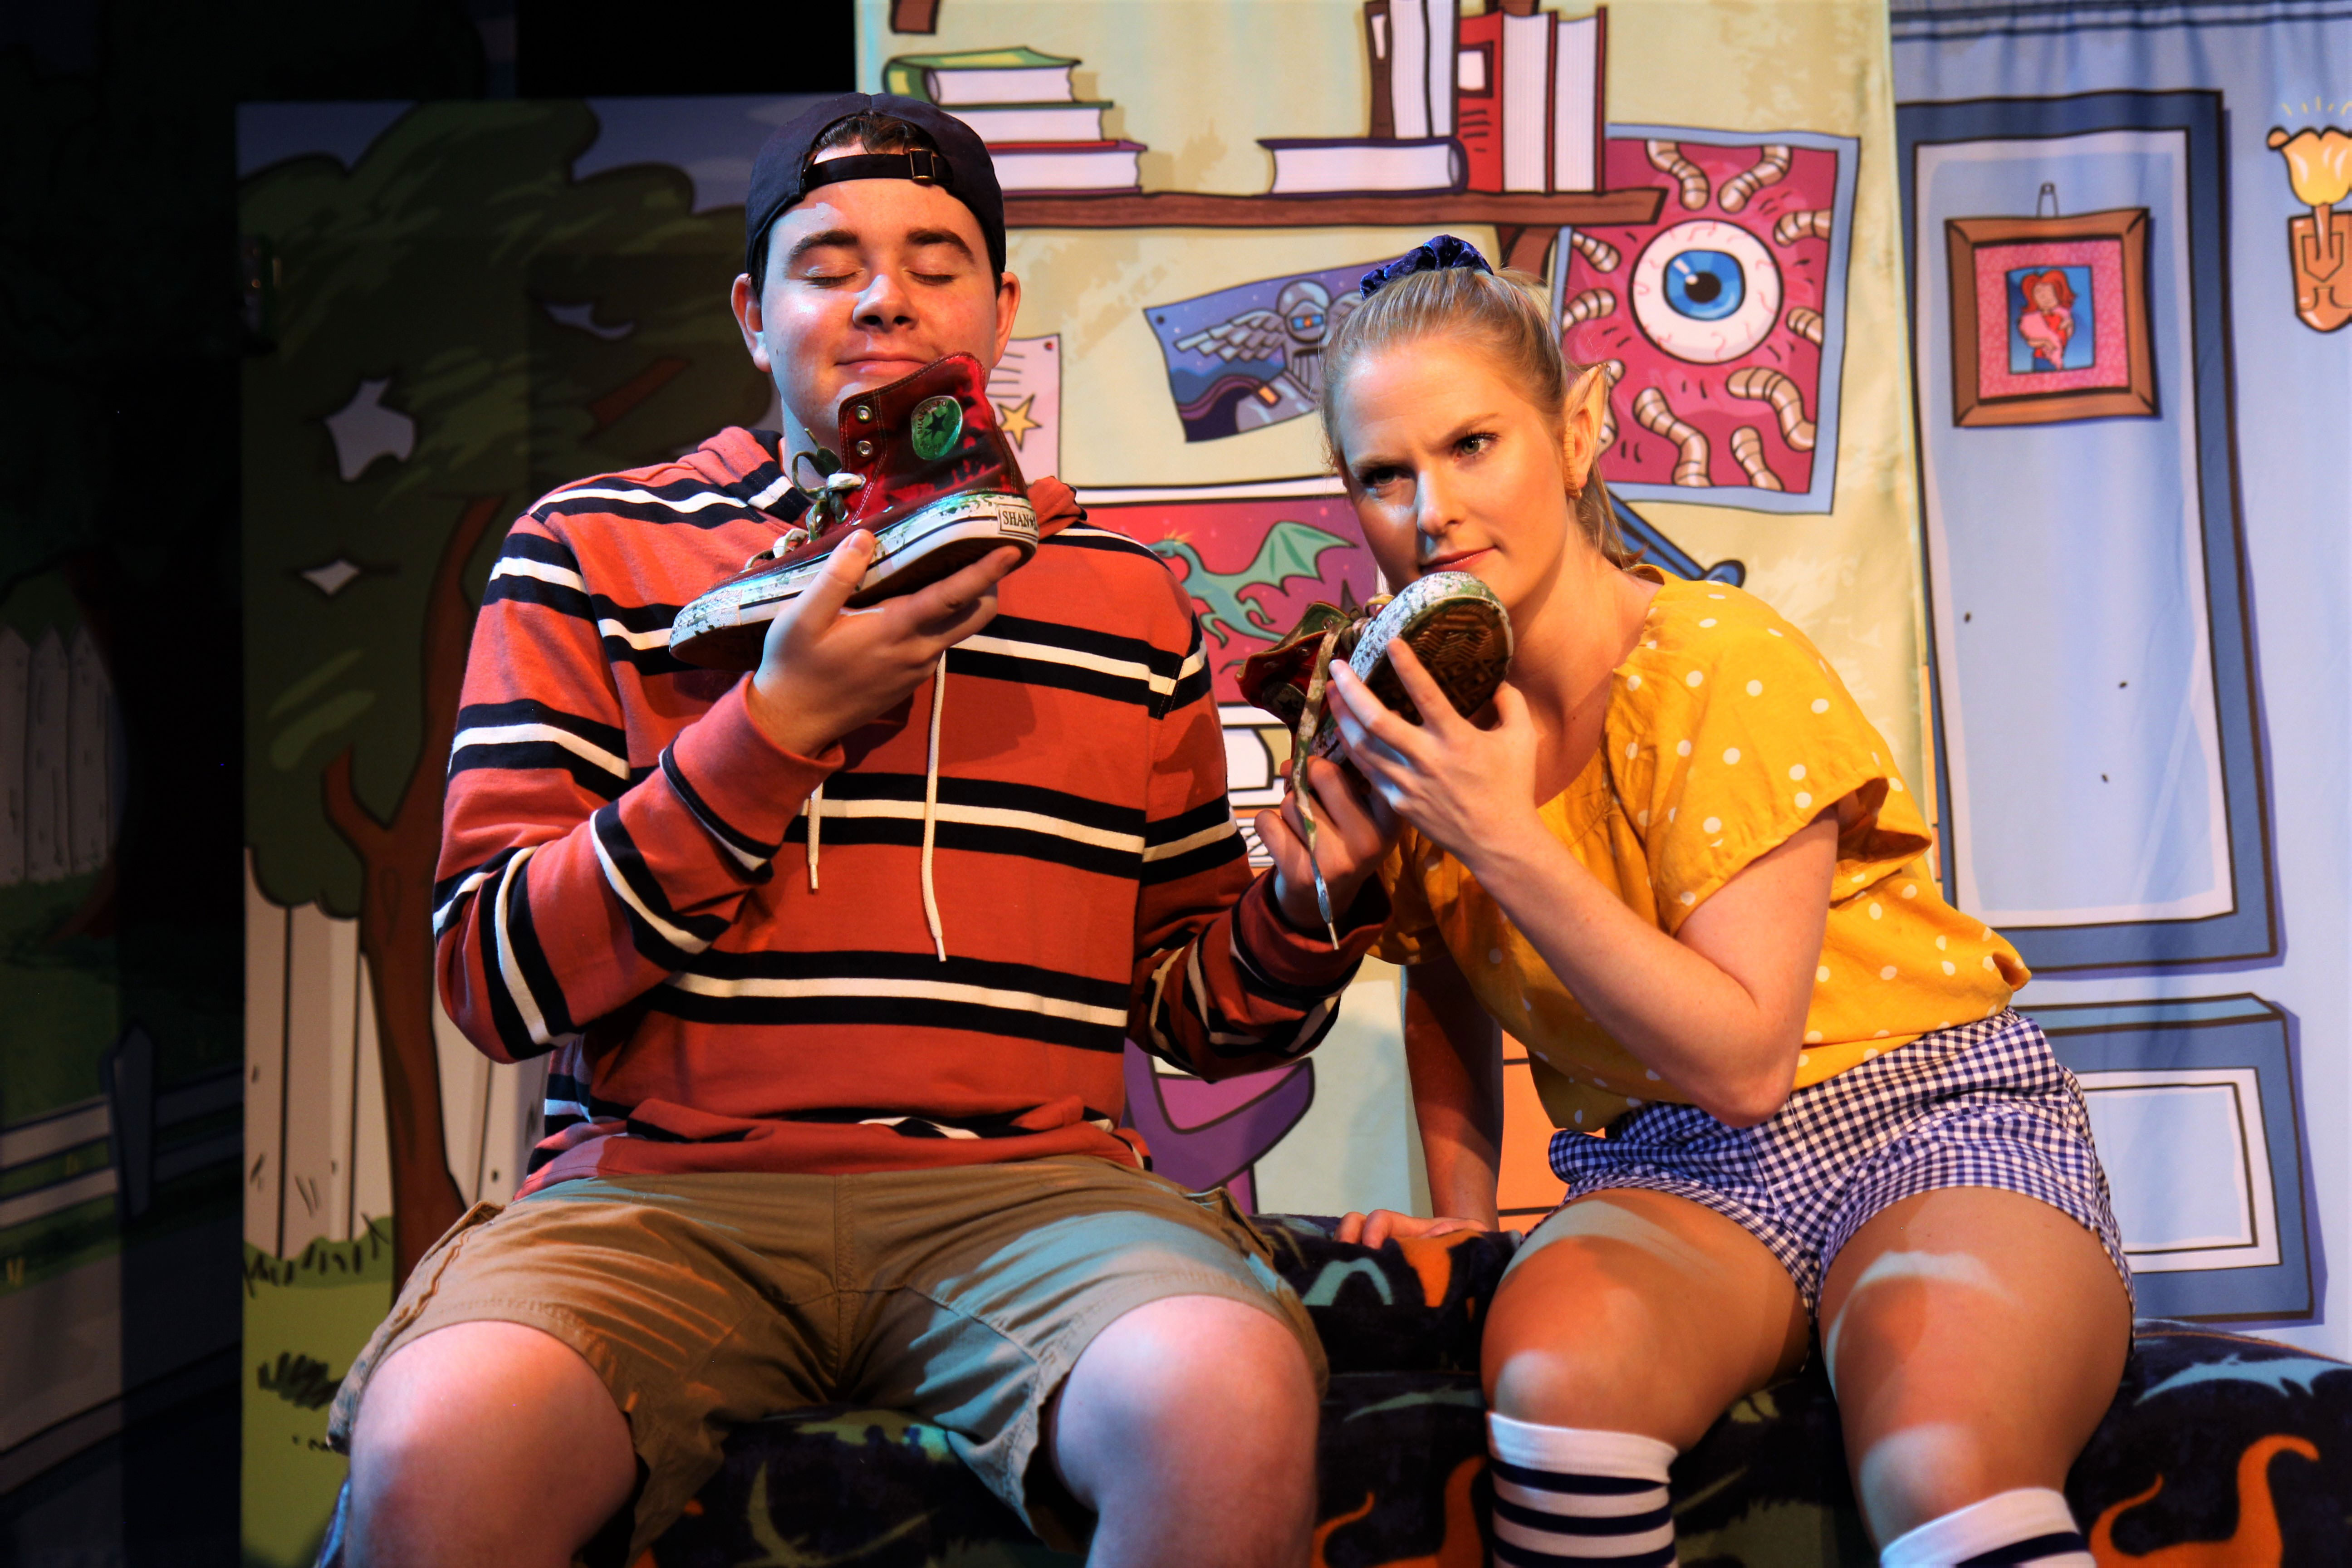 Frank Monier (as Stink Moody) and Jeorgi Smith (as Sophie of the Elves)